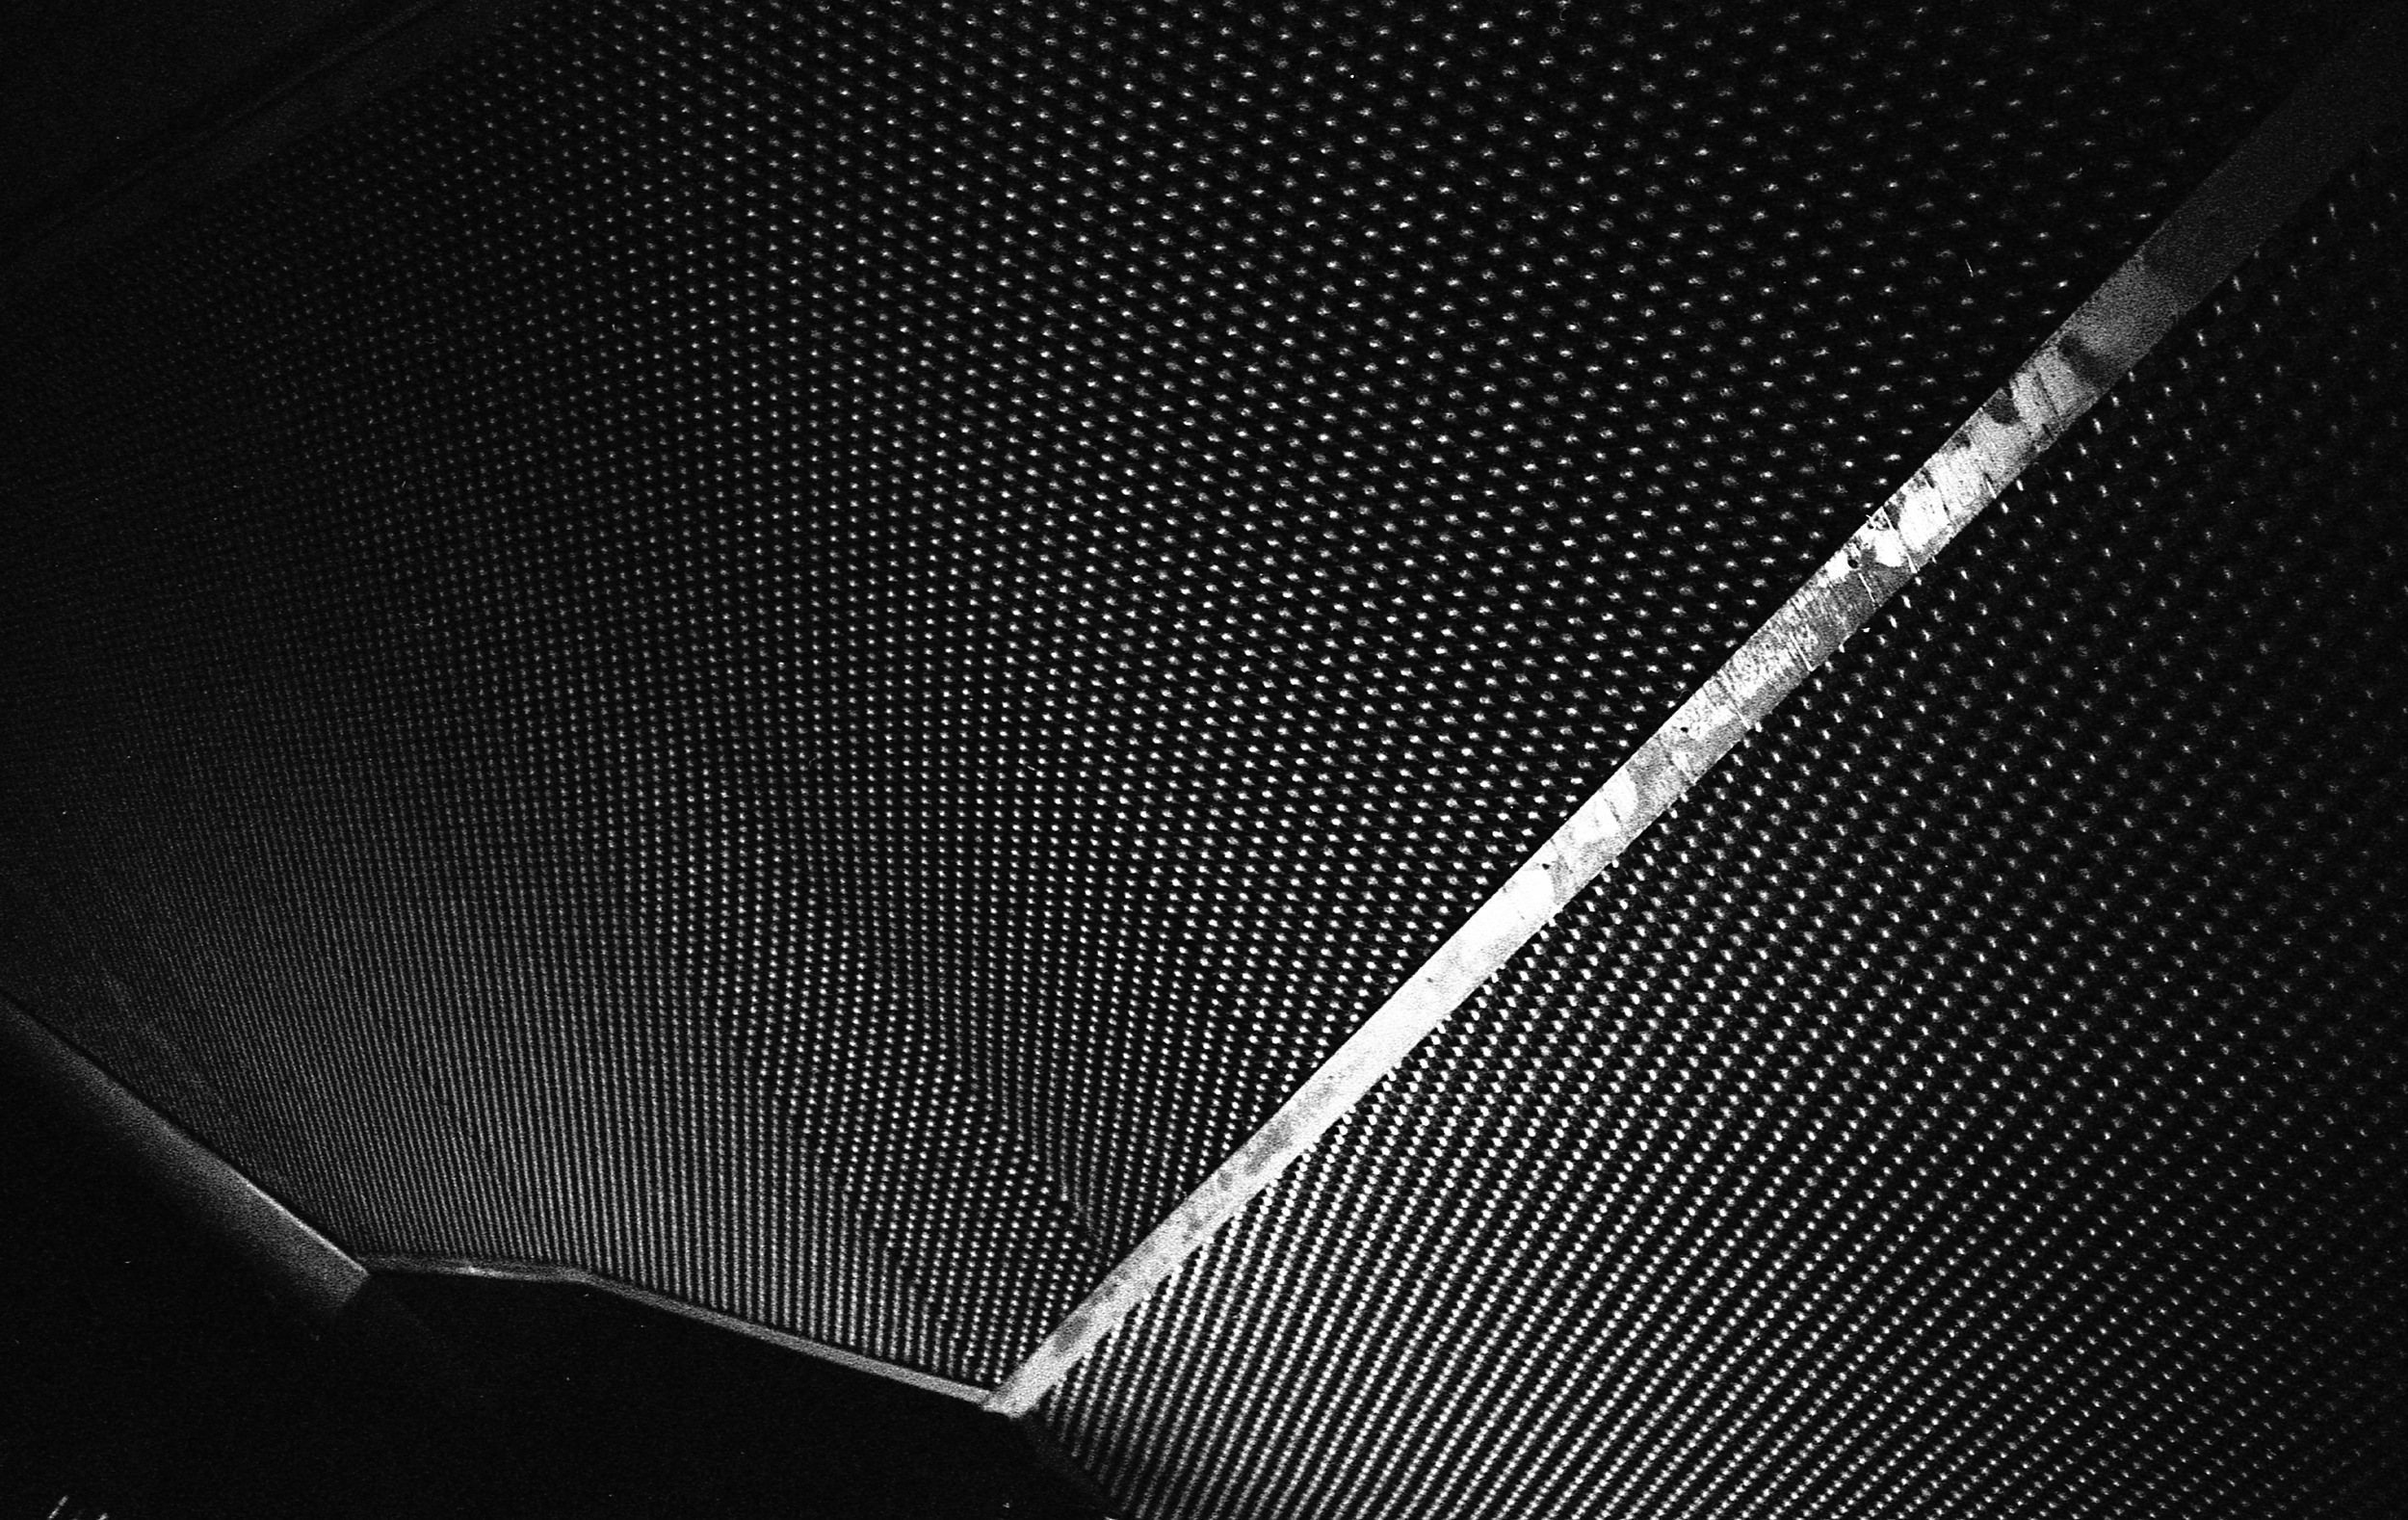 Dots / A modernist sky - Hunt Library (Front porch) | HP5+ @ 800